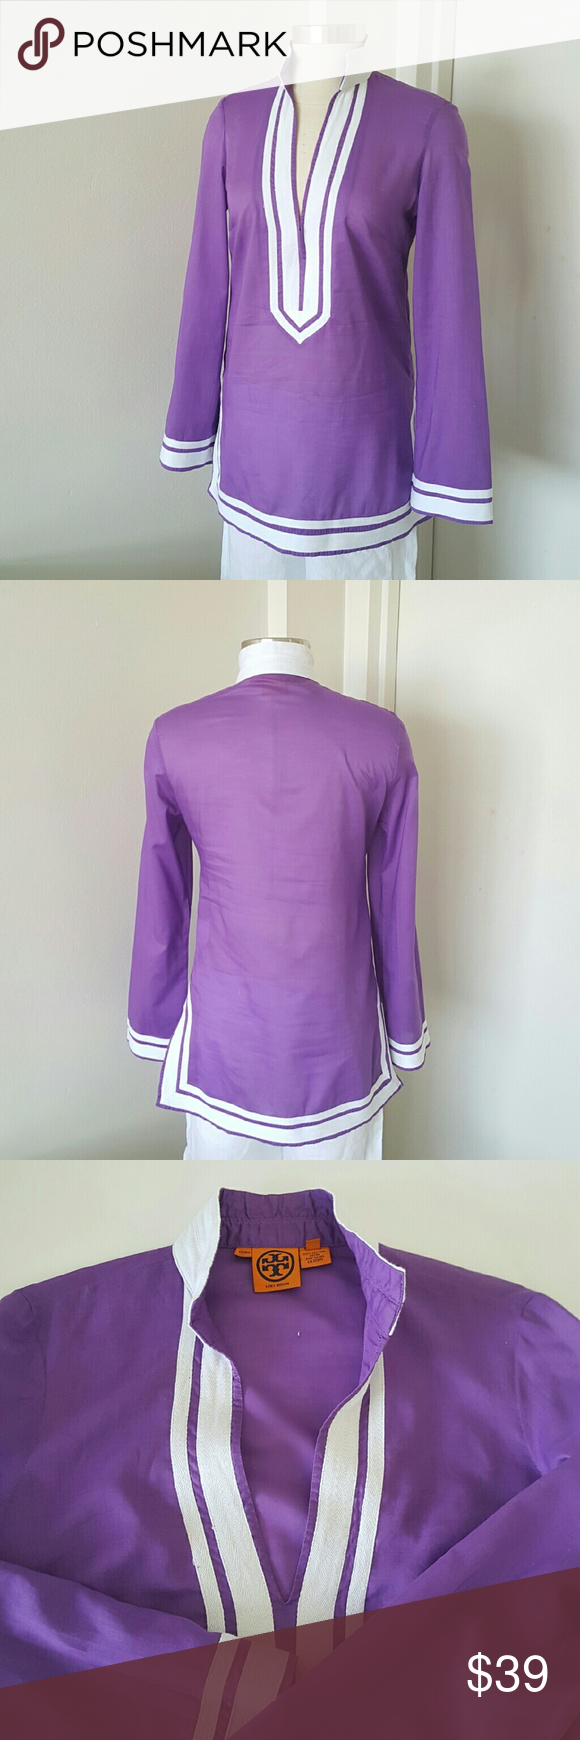 "Tory Burch Cotton Purple Tunic Authentic tunic from Tory Burch 100% cotton,  perfect with white jeans or linen pants,  very thin fabric,  been worn only one time exelent condition.  Measurements are length 29"" hip 38"" bust 38"" waist 34"" Tory Burch Tops Tunics"